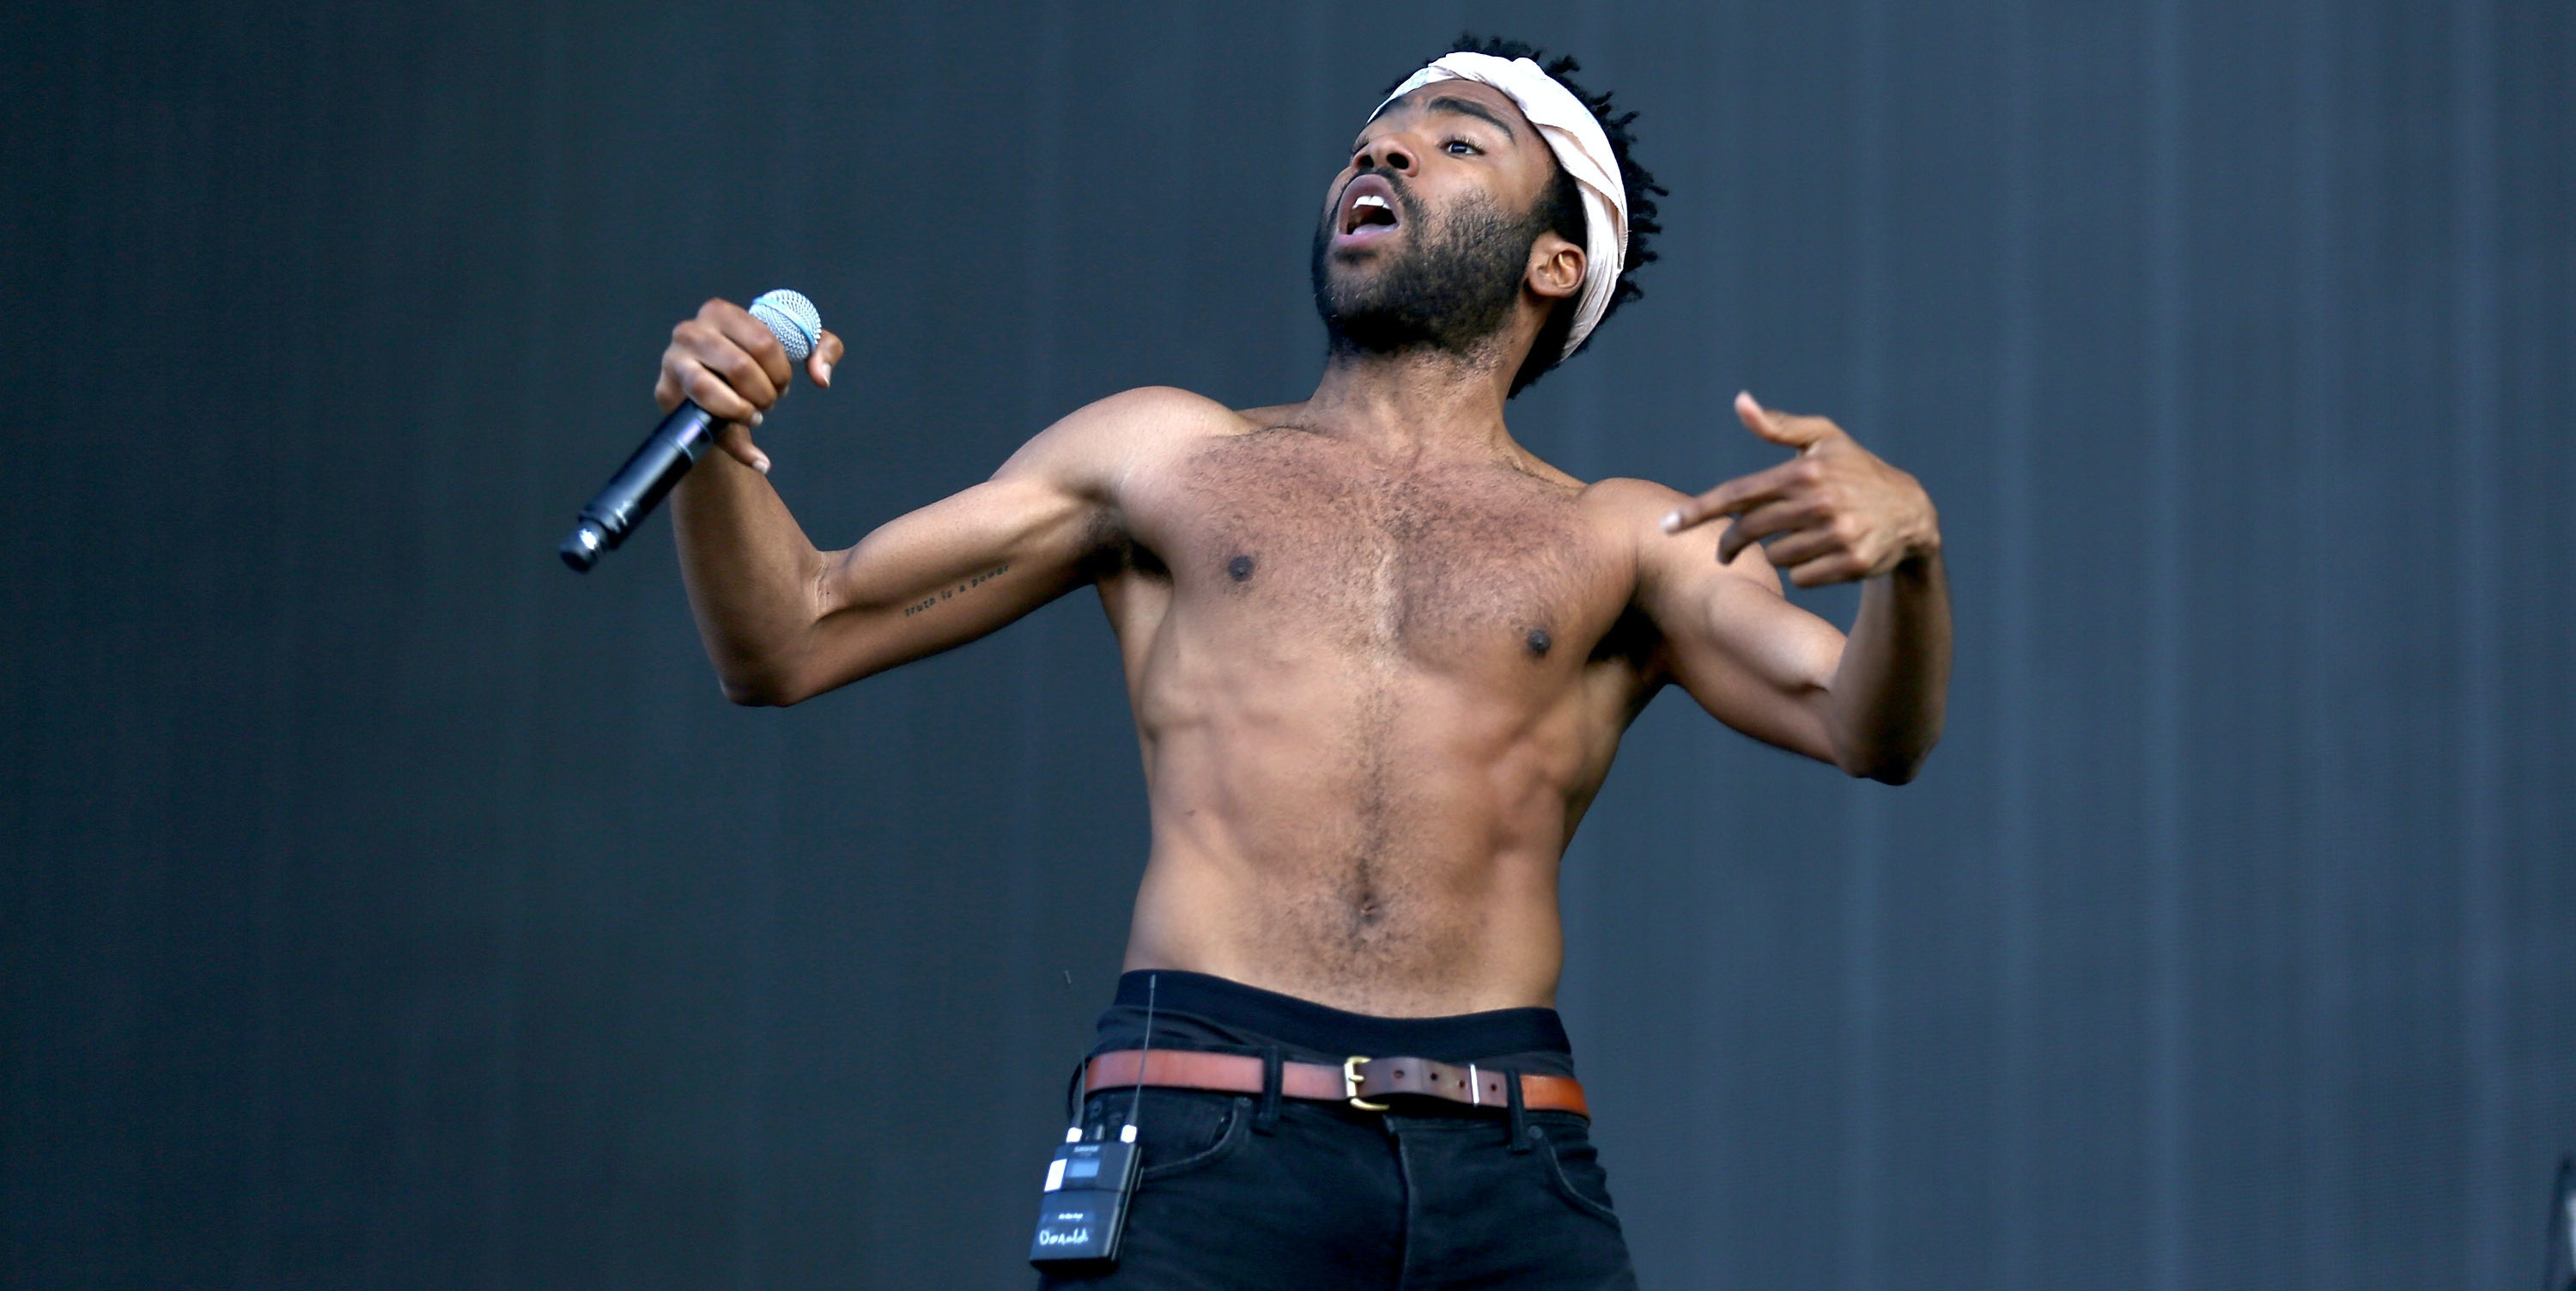 LONDON, ENGLAND - JULY 04: Childish Gambino performs on day 2 of the New Look Wireless Festival at Finsbury Park on July 4, 2015 in London, England.  (Photo by Tim P. Whitby/Getty Images)